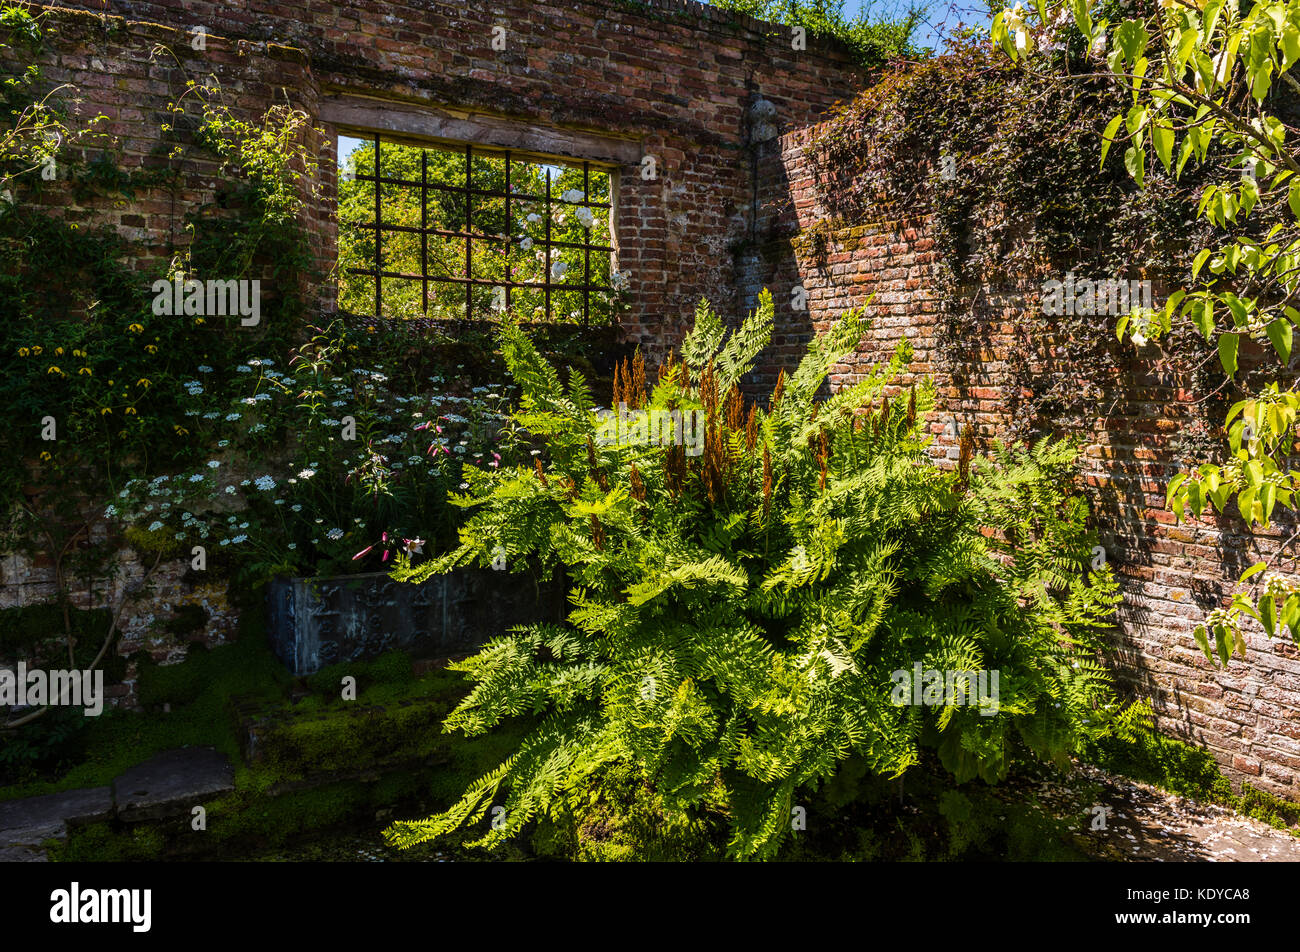 Derelict building corner at Sissinghurst Gardens, Kent, UK - Stock Image